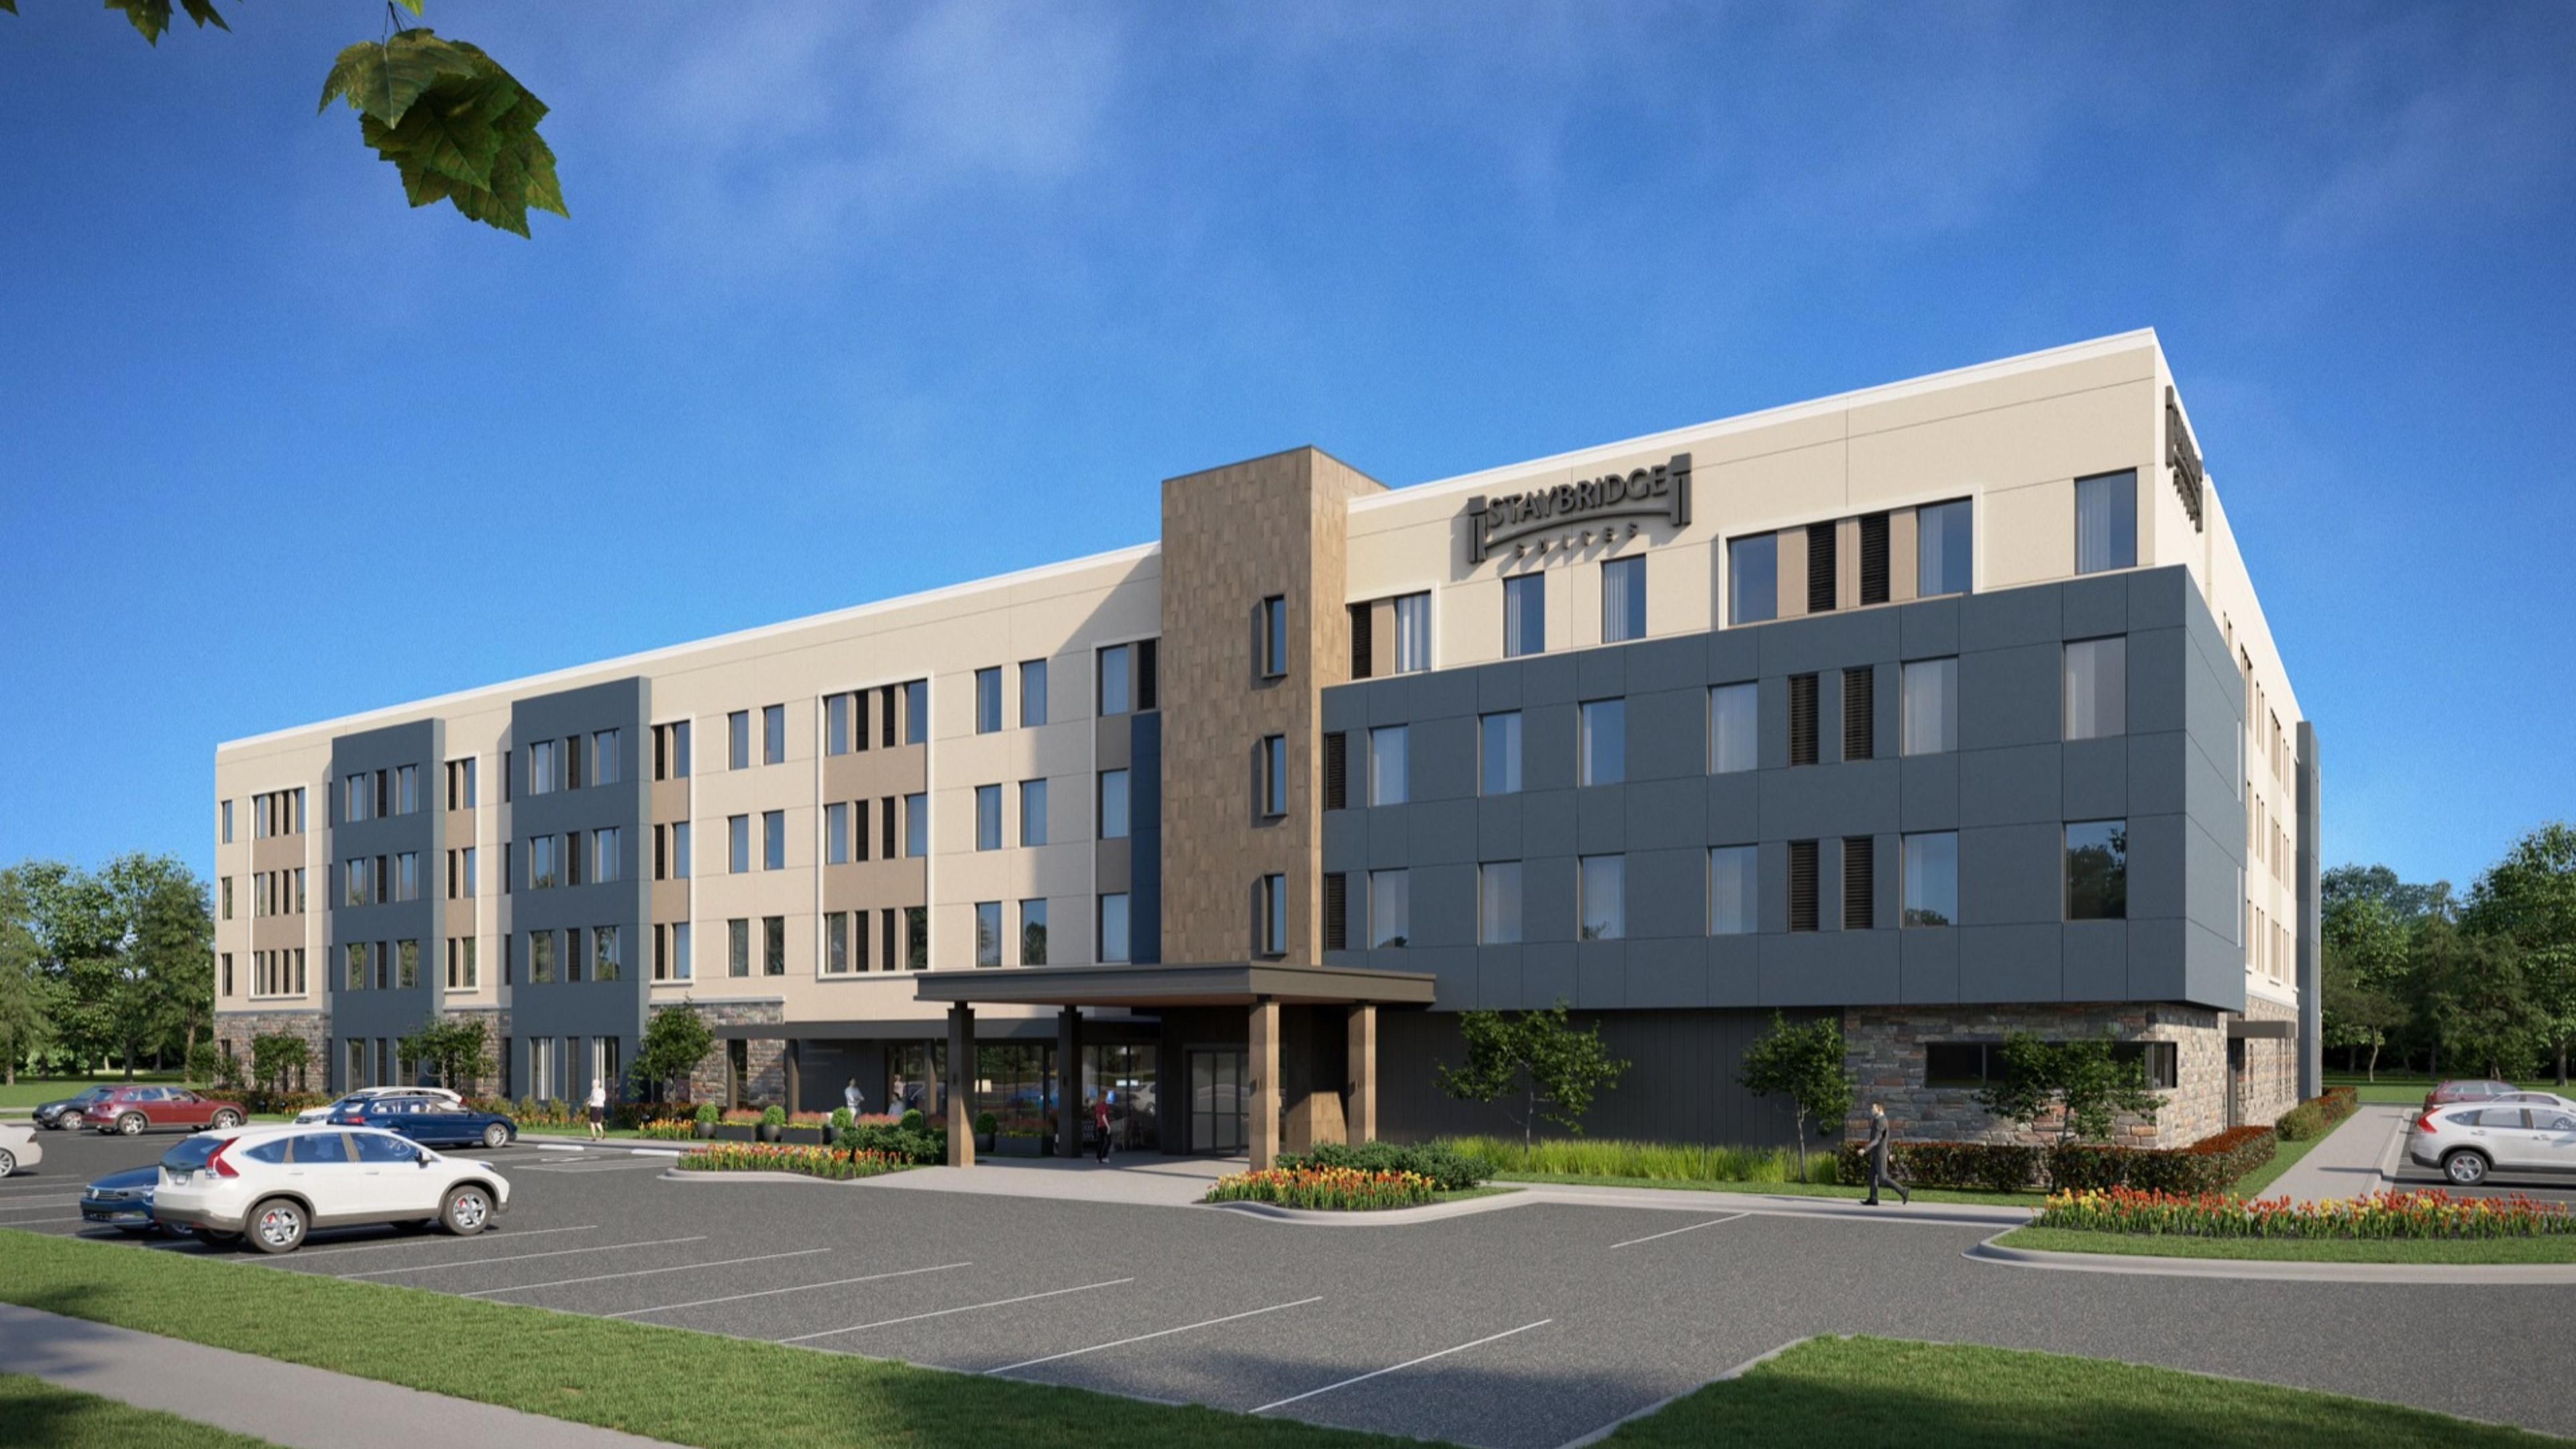 Extended Stay Hotel Suites in Ames Iowa | Staybridge Suites Ames